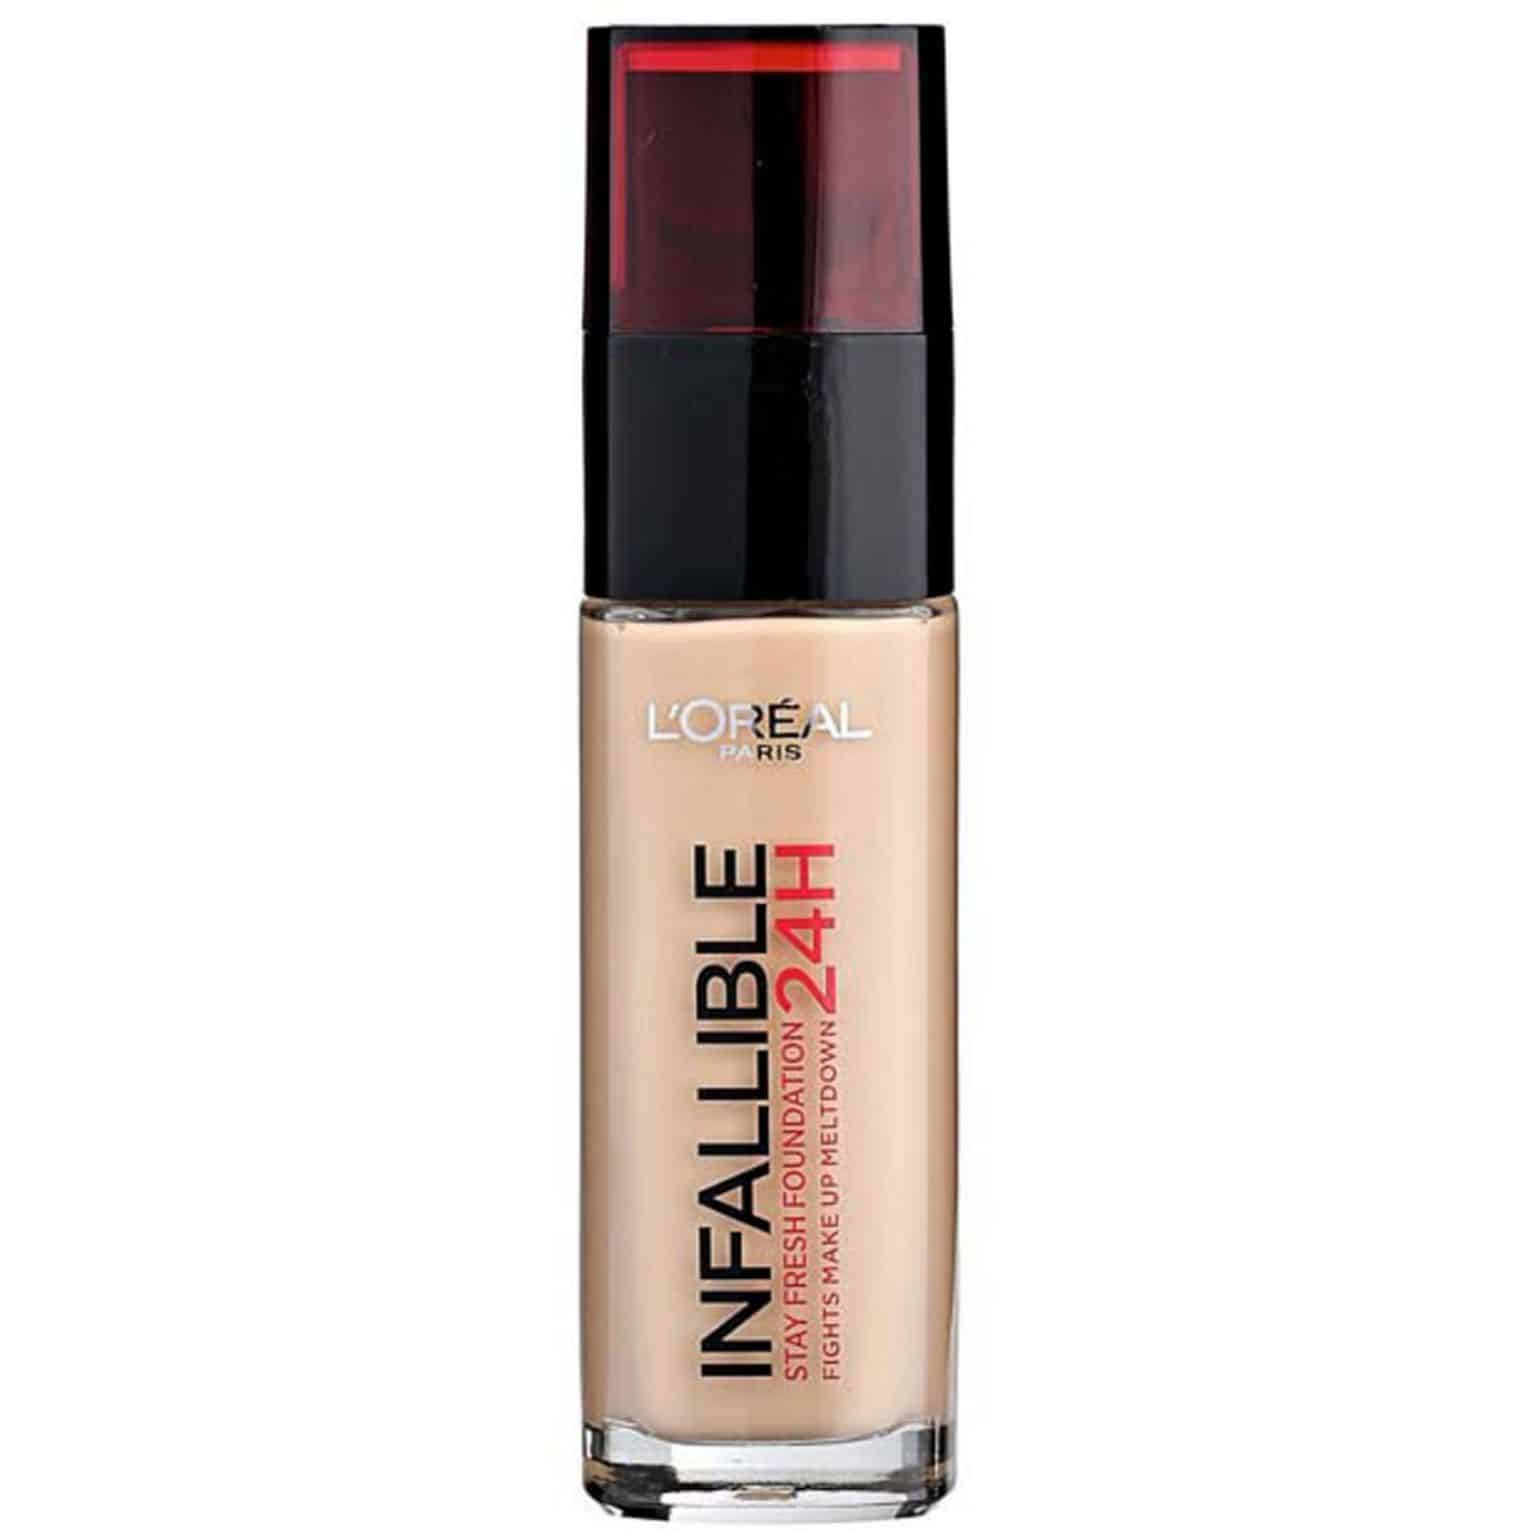 LOreal-Paris-Infallible-24h-Stay-Fresh-Liquid-Foundation